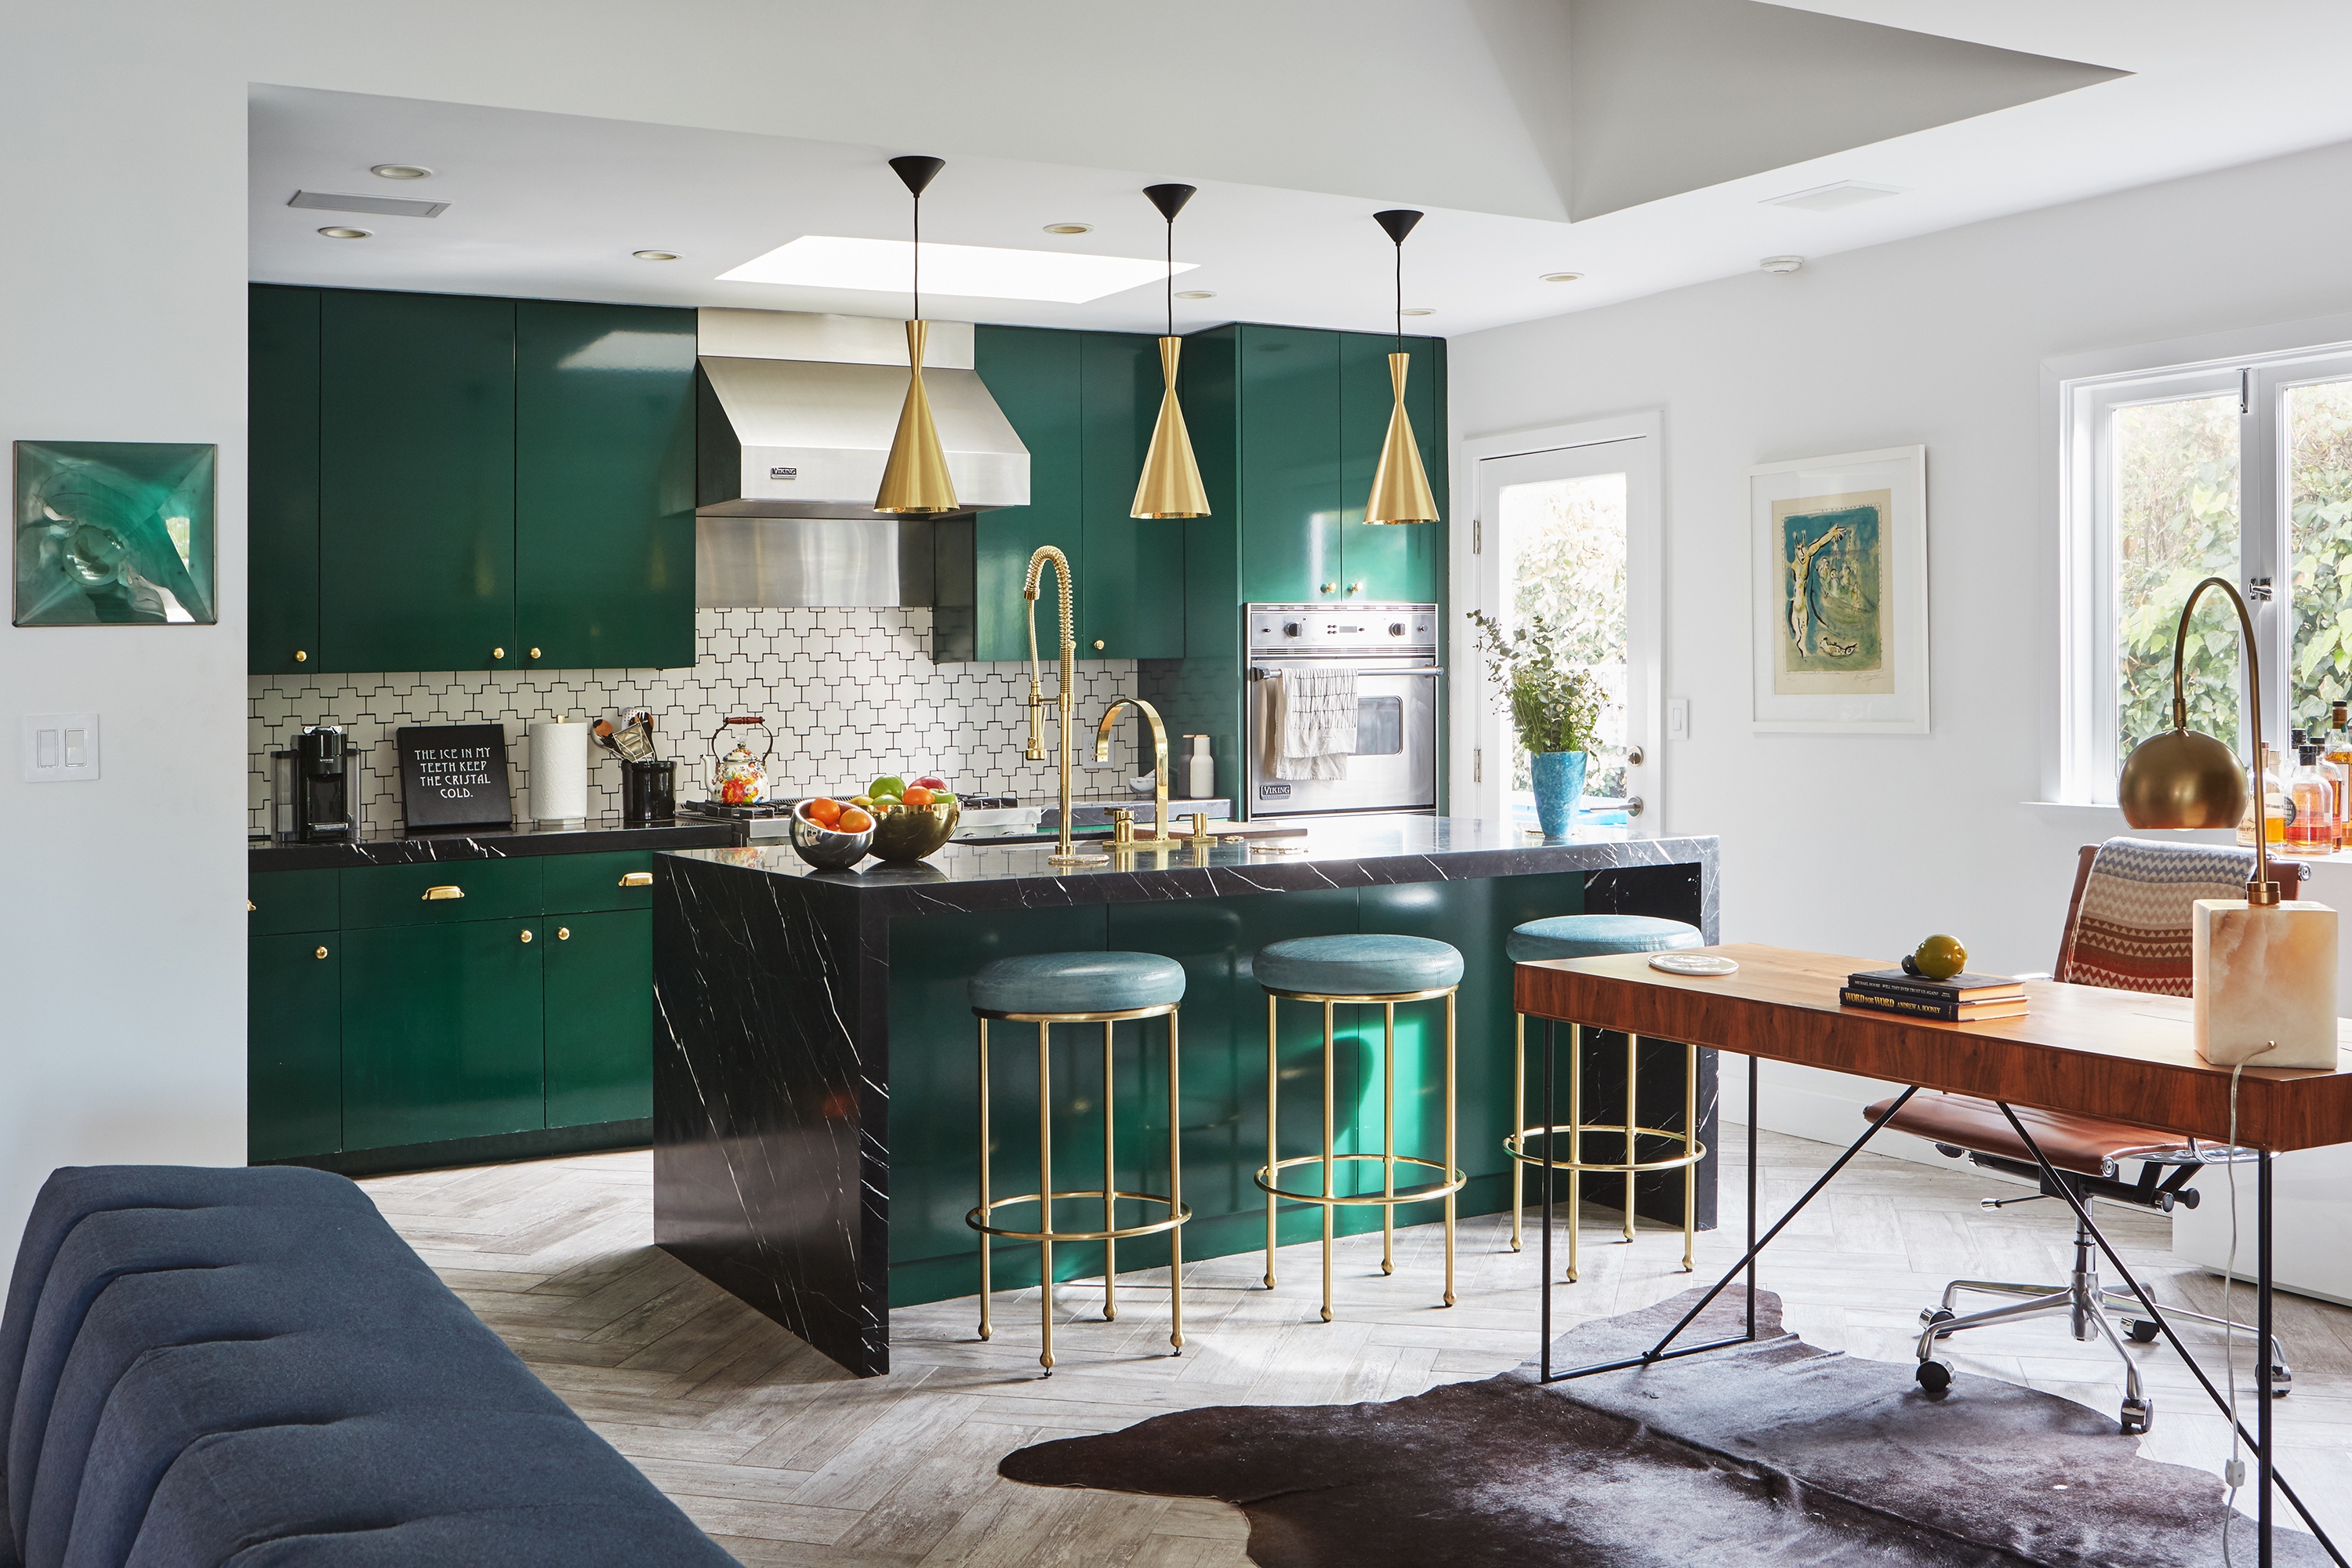 Emerald Green Paint In A Kitchen